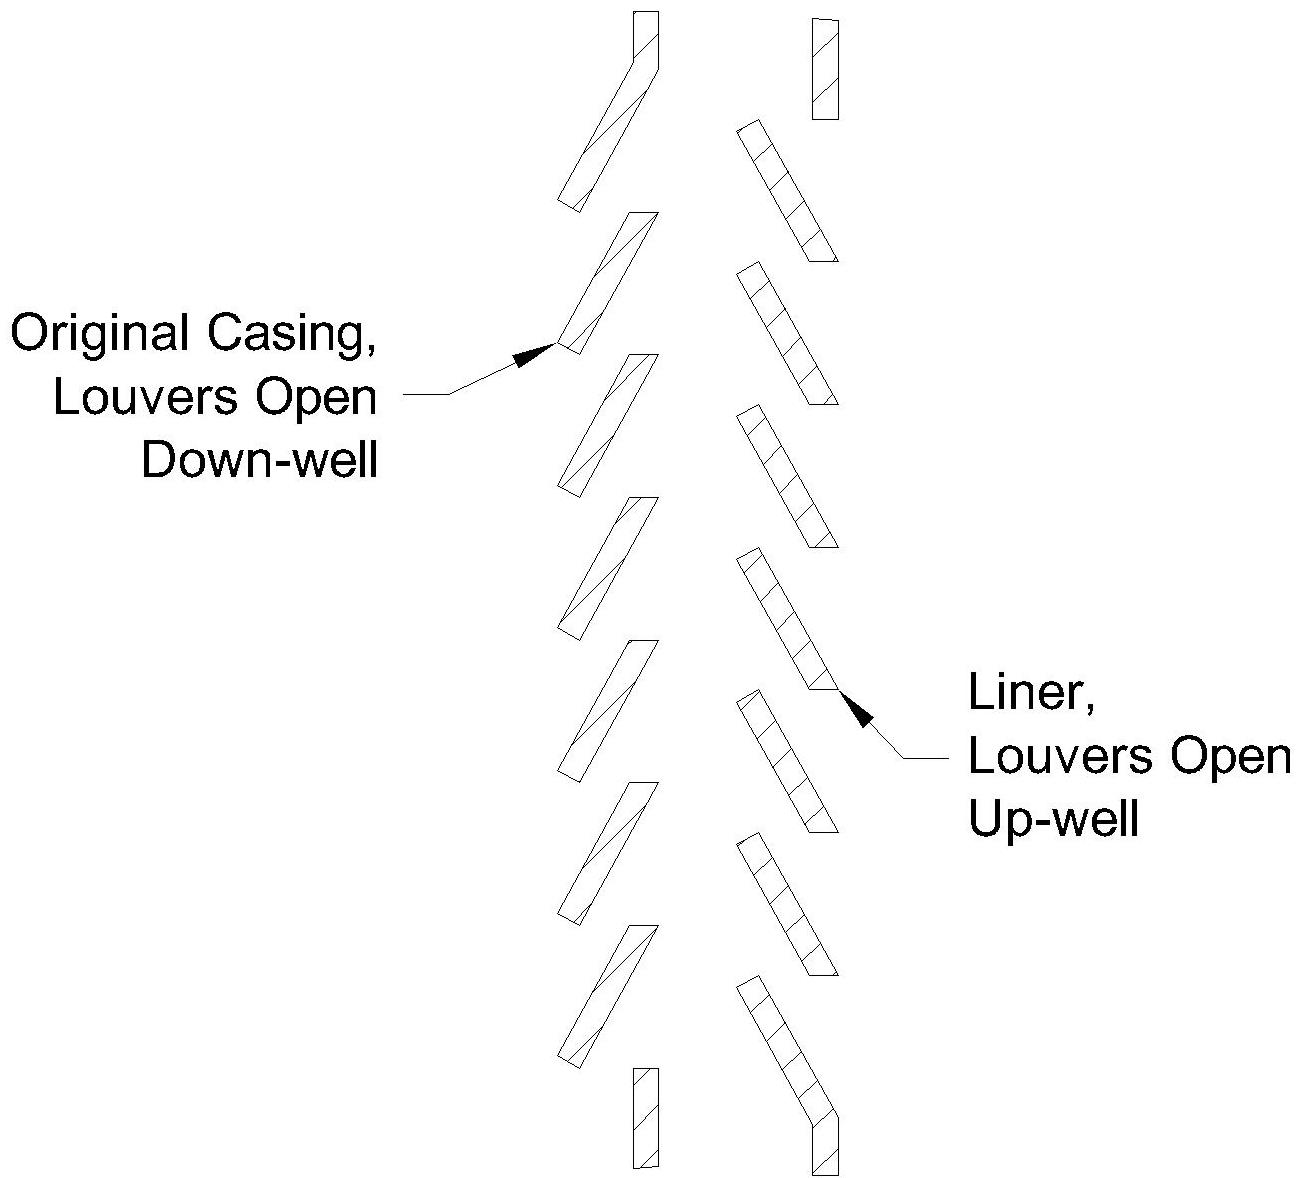 Fluid Mechanics Applied To Rehabilitation With Liner